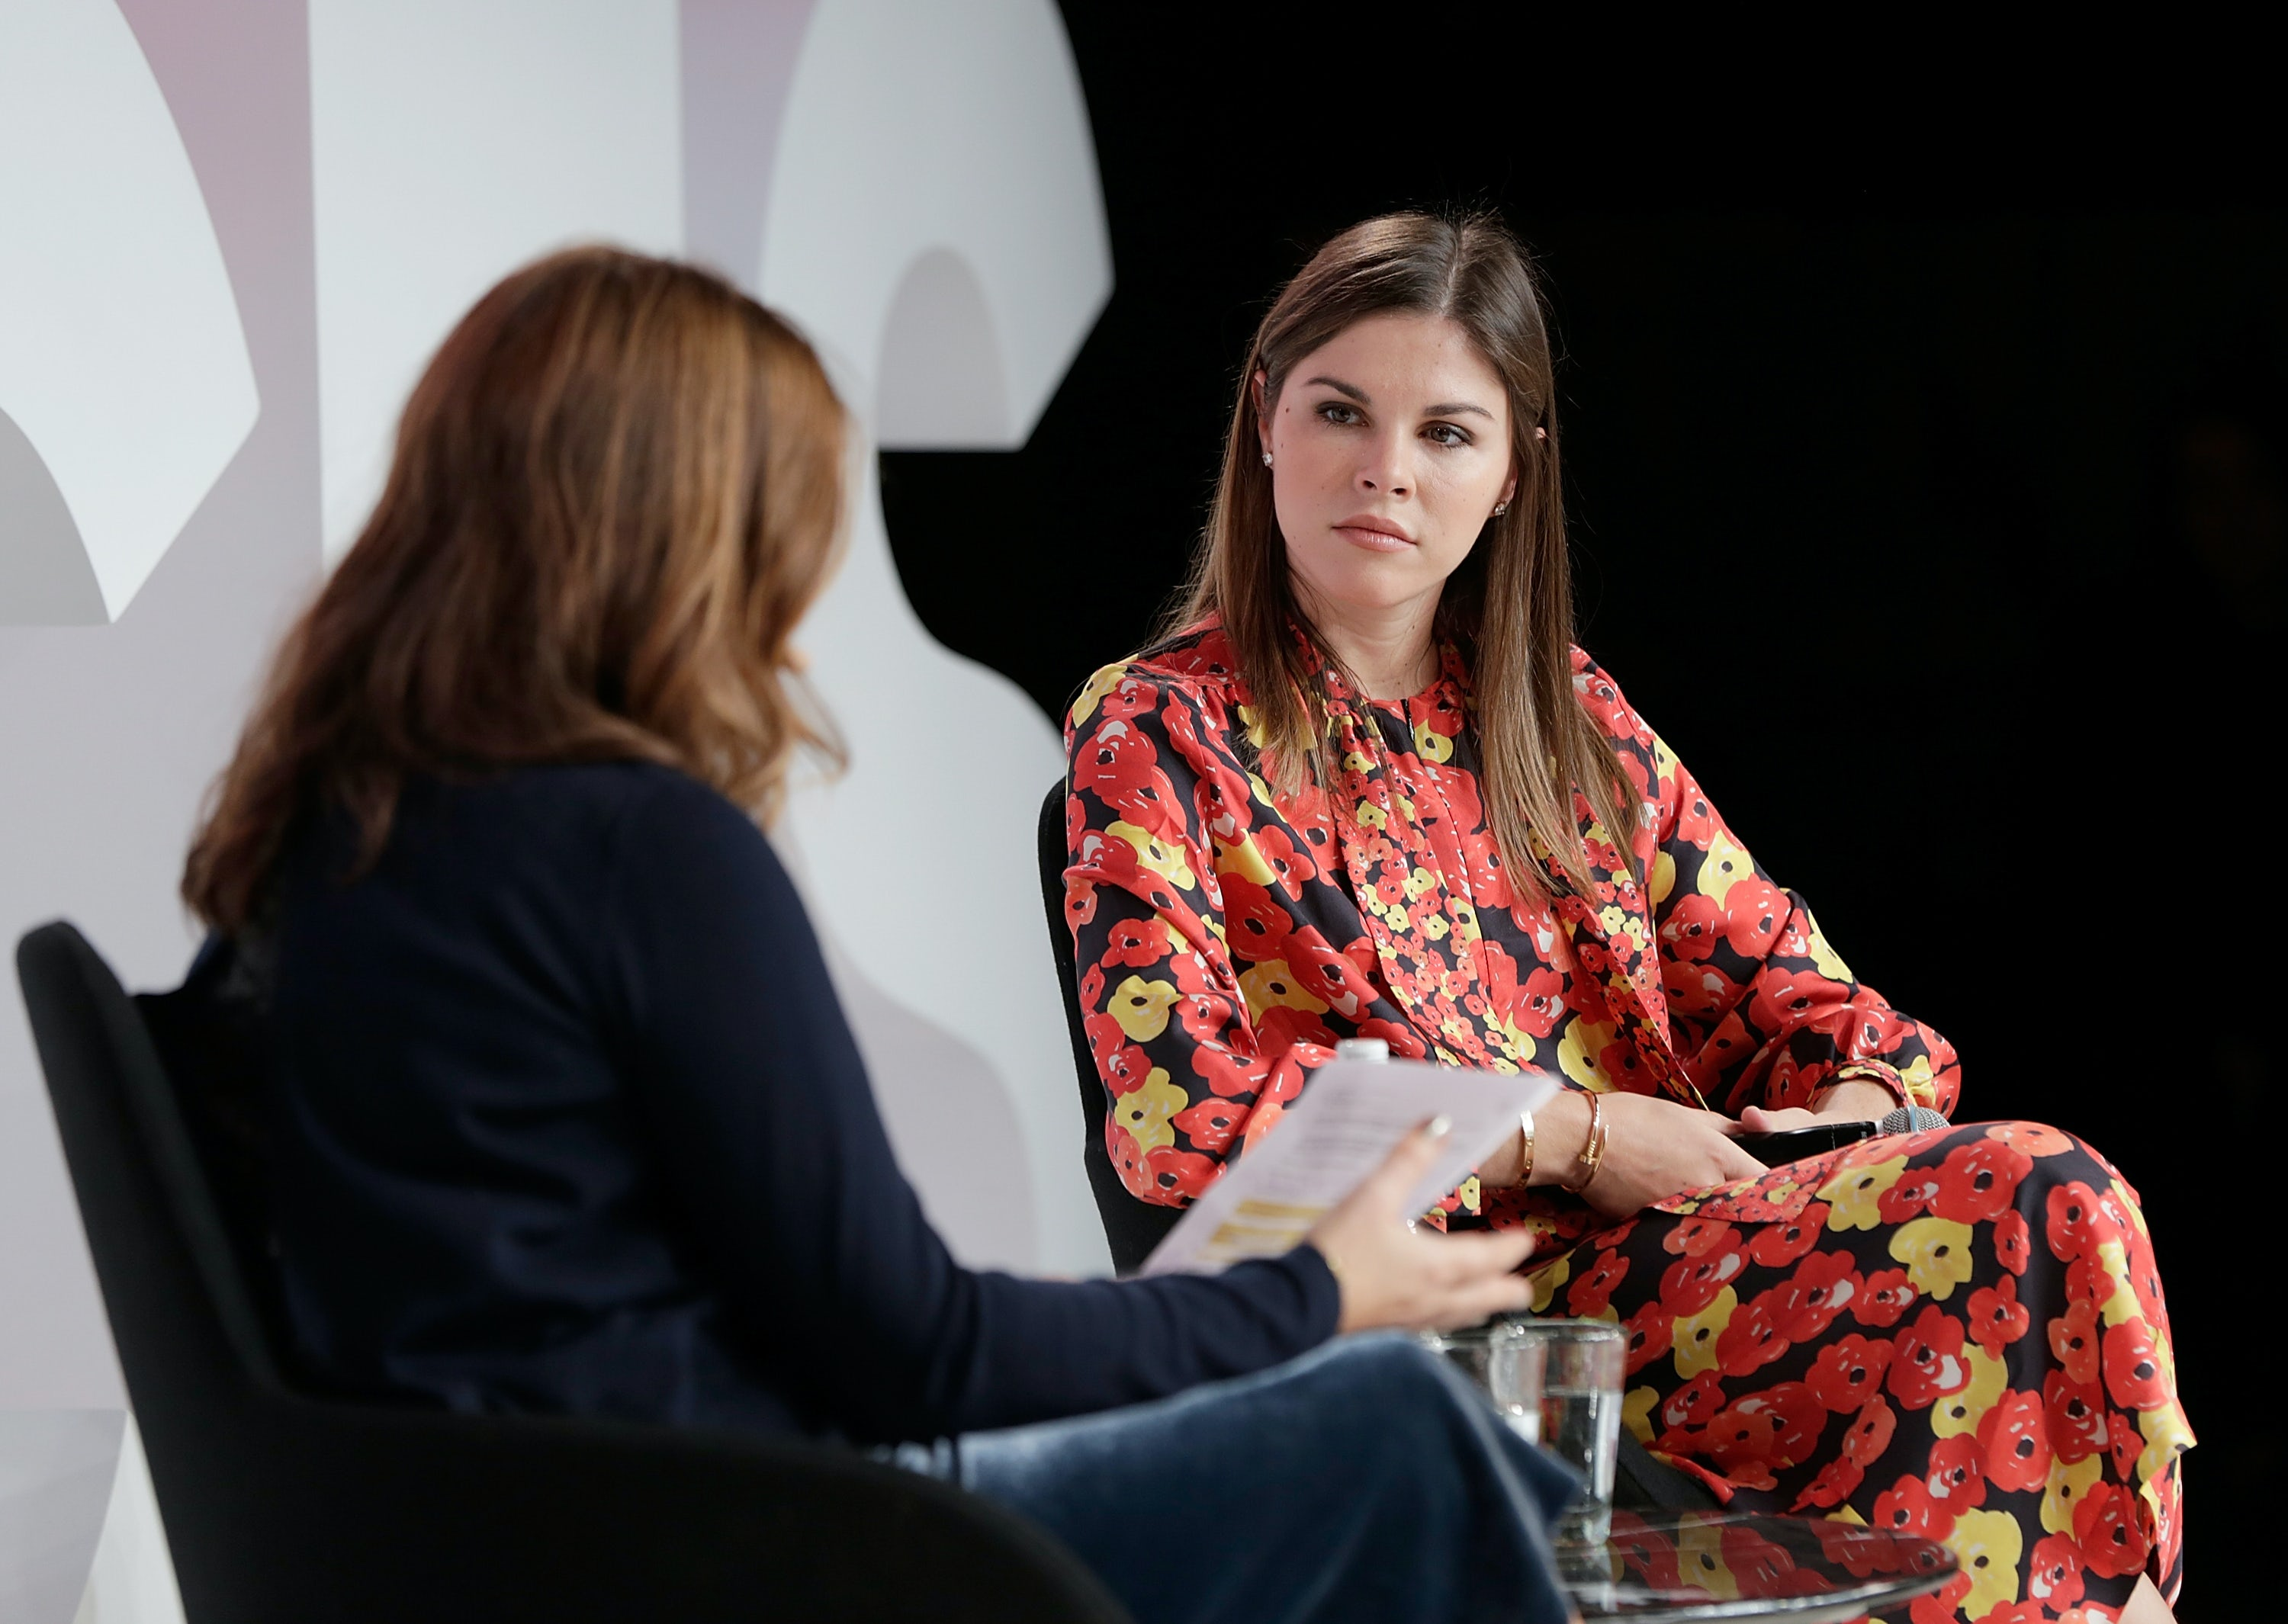 OXFORD, ENGLAND - DECEMBER 01:  Alexandra Shulman (L) and Emily Weiss speak on stage during #BoFVOICES on December 1, 2017 in Oxford, England.  (Photo by John Phillips/Getty Images for The Business of Fashion )